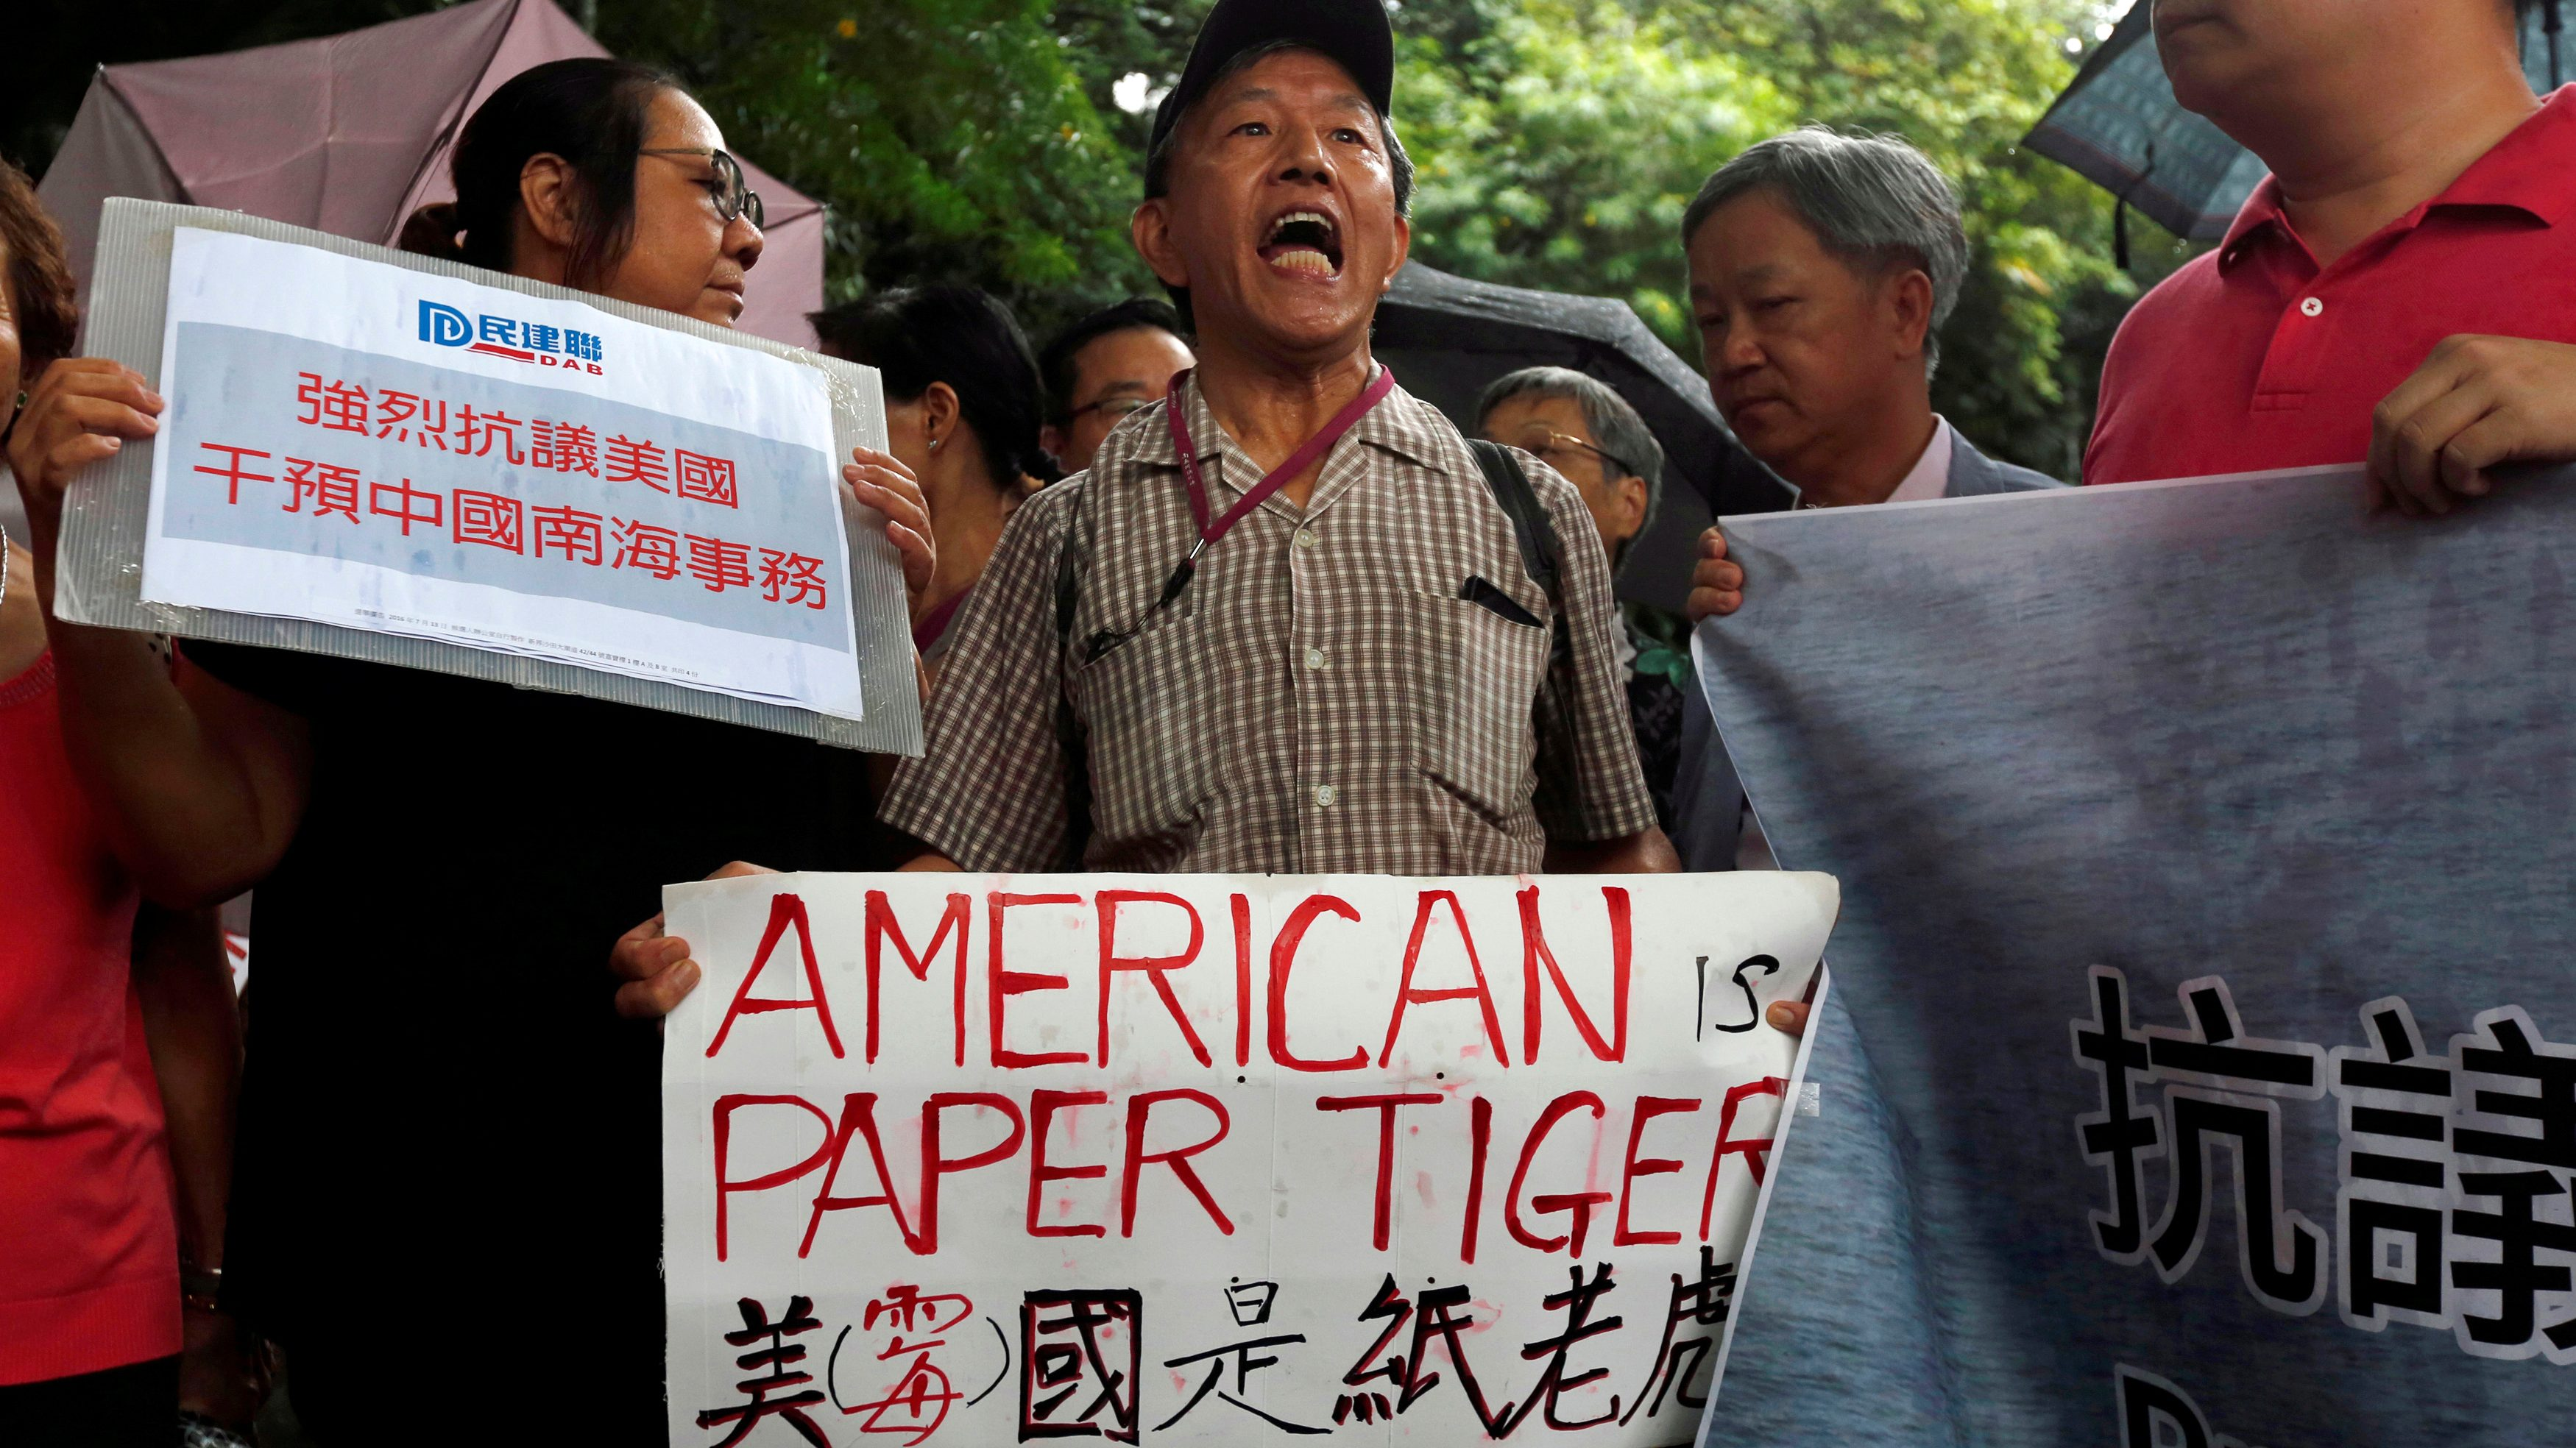 A pro-China protester chants slogans against the United States supporting an international court ruling that denied China's claims to the South China Sea, outside U.S. Consulate in Hong Kong, China July 14, 2016.      REUTERS/Bobby Yip - RTSHTN6